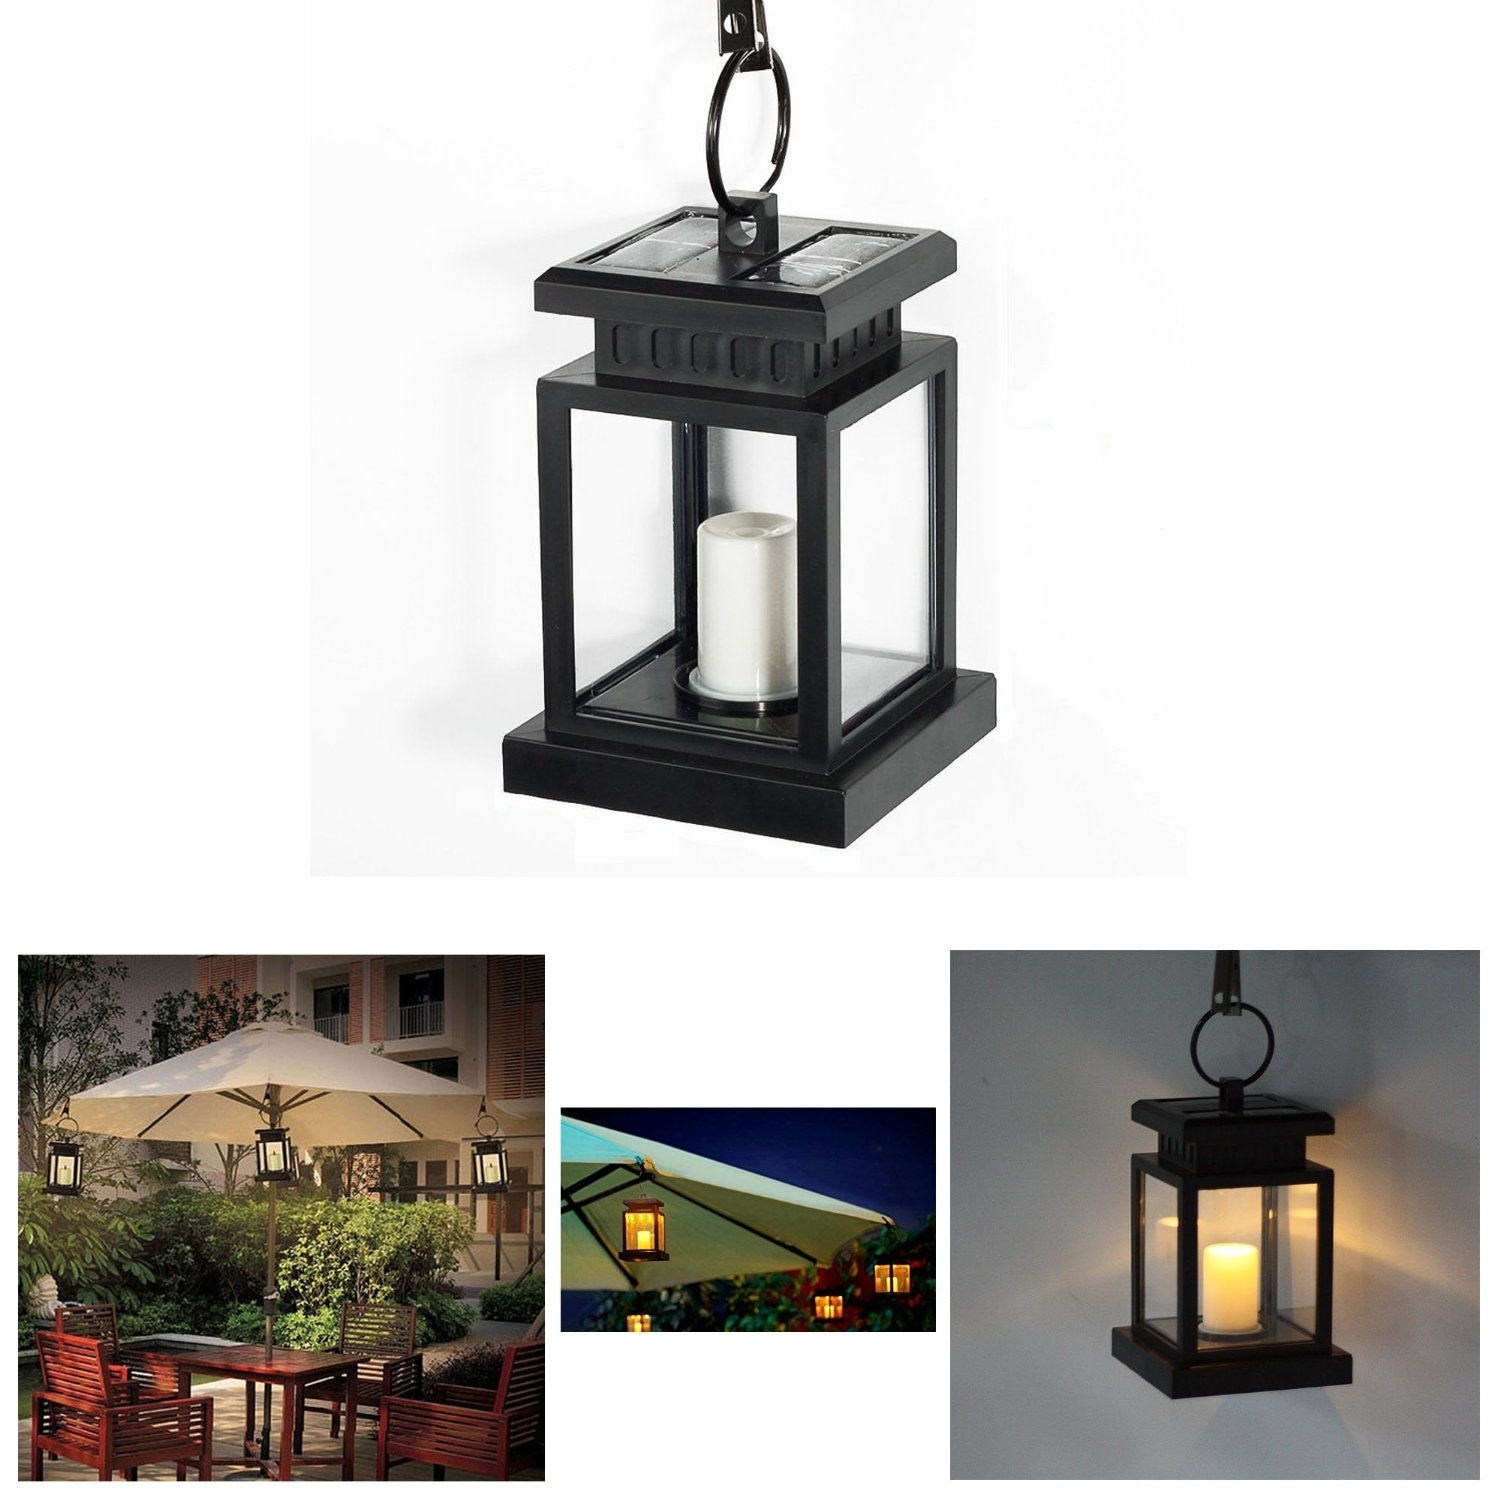 Solar Powered Hanging Umbrella Lantern Candle Led Light With Clamp With Solar Powered Outdoor Hanging Lanterns (#13 of 15)